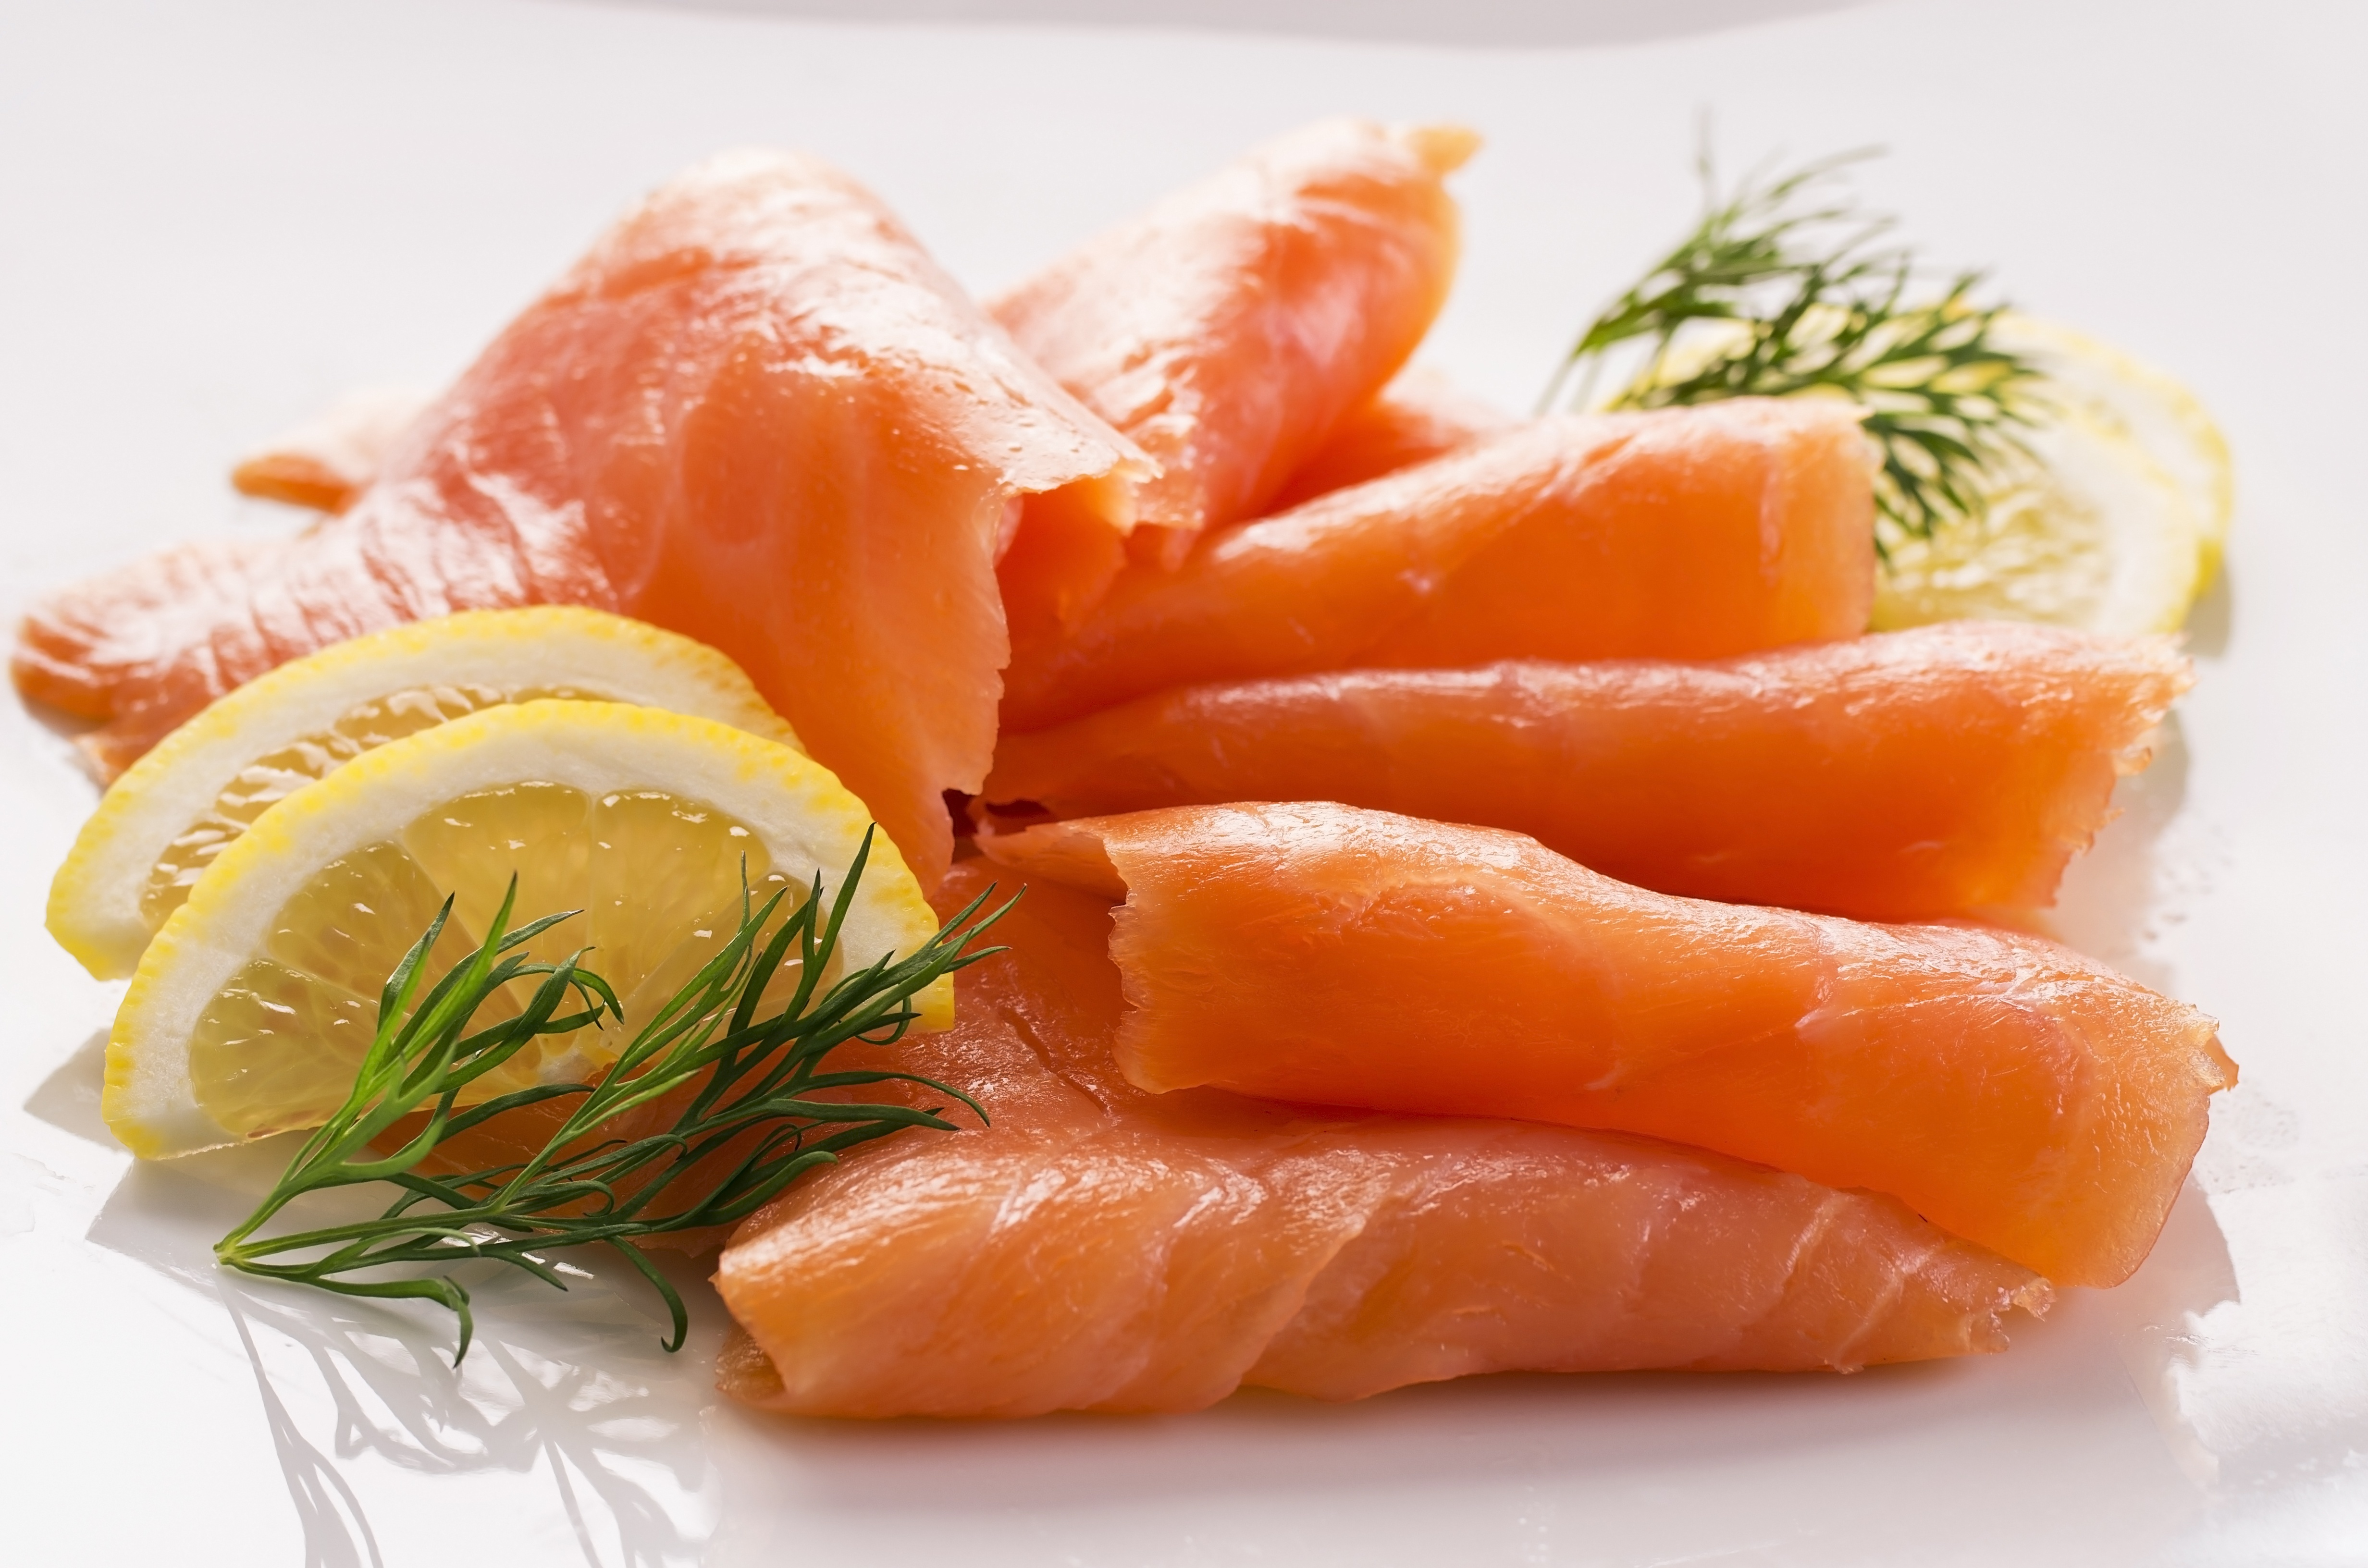 Article image for Two Australians dead after eating contaminated smoked salmon